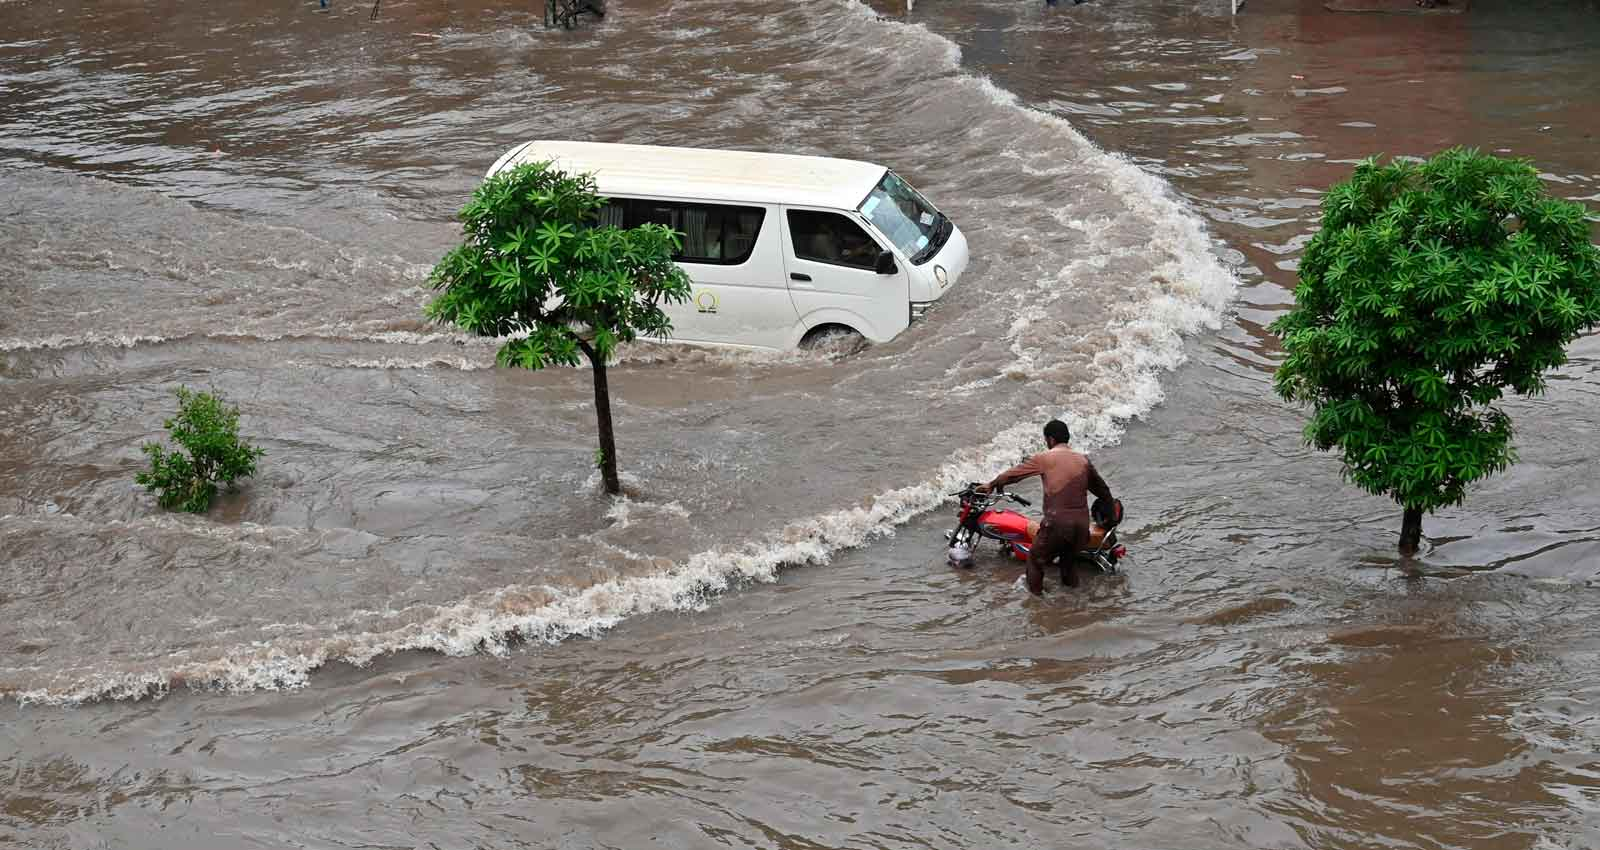 In pictures: Lahore underwater after heavy rainfall